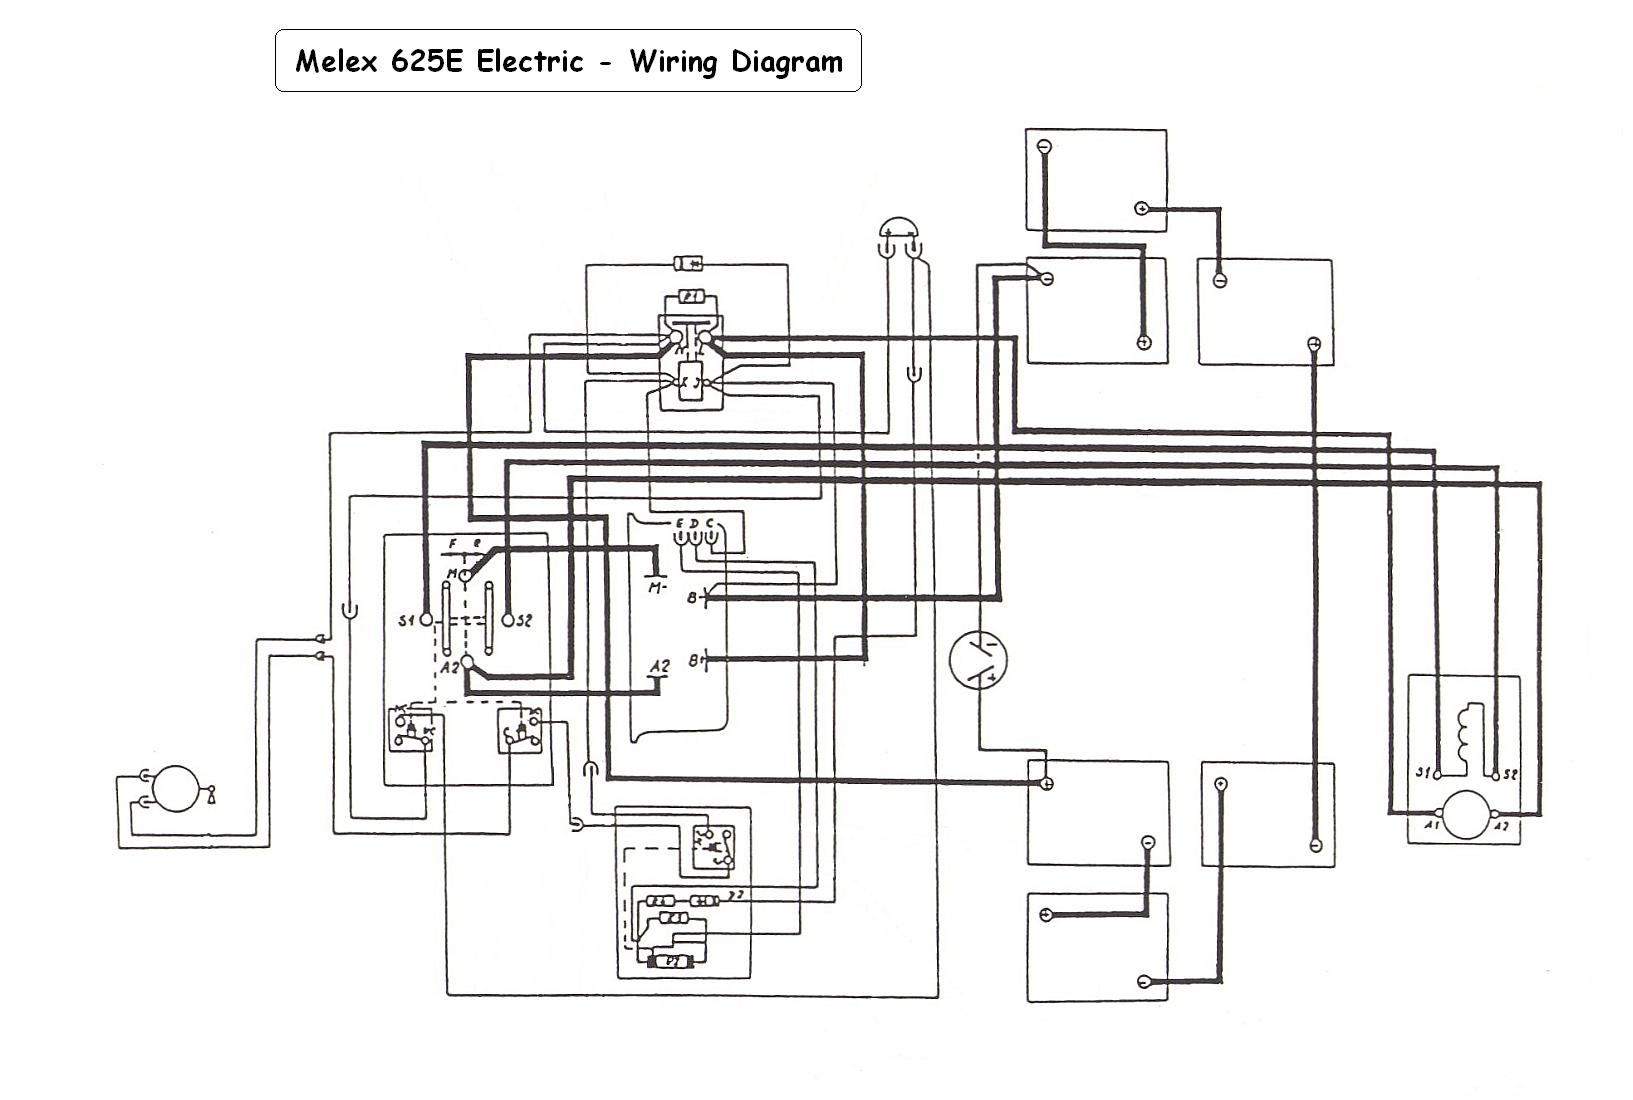 Wiring Diagram For A Baseboard Heater furthermore 4 Wire Ignition Switch Wiring Diagram further 2008 Chrysler Town And Country Radiator Diagram additionally L9a027 together with Usb Box Fan. on 3 pin puter fan wiring diagram